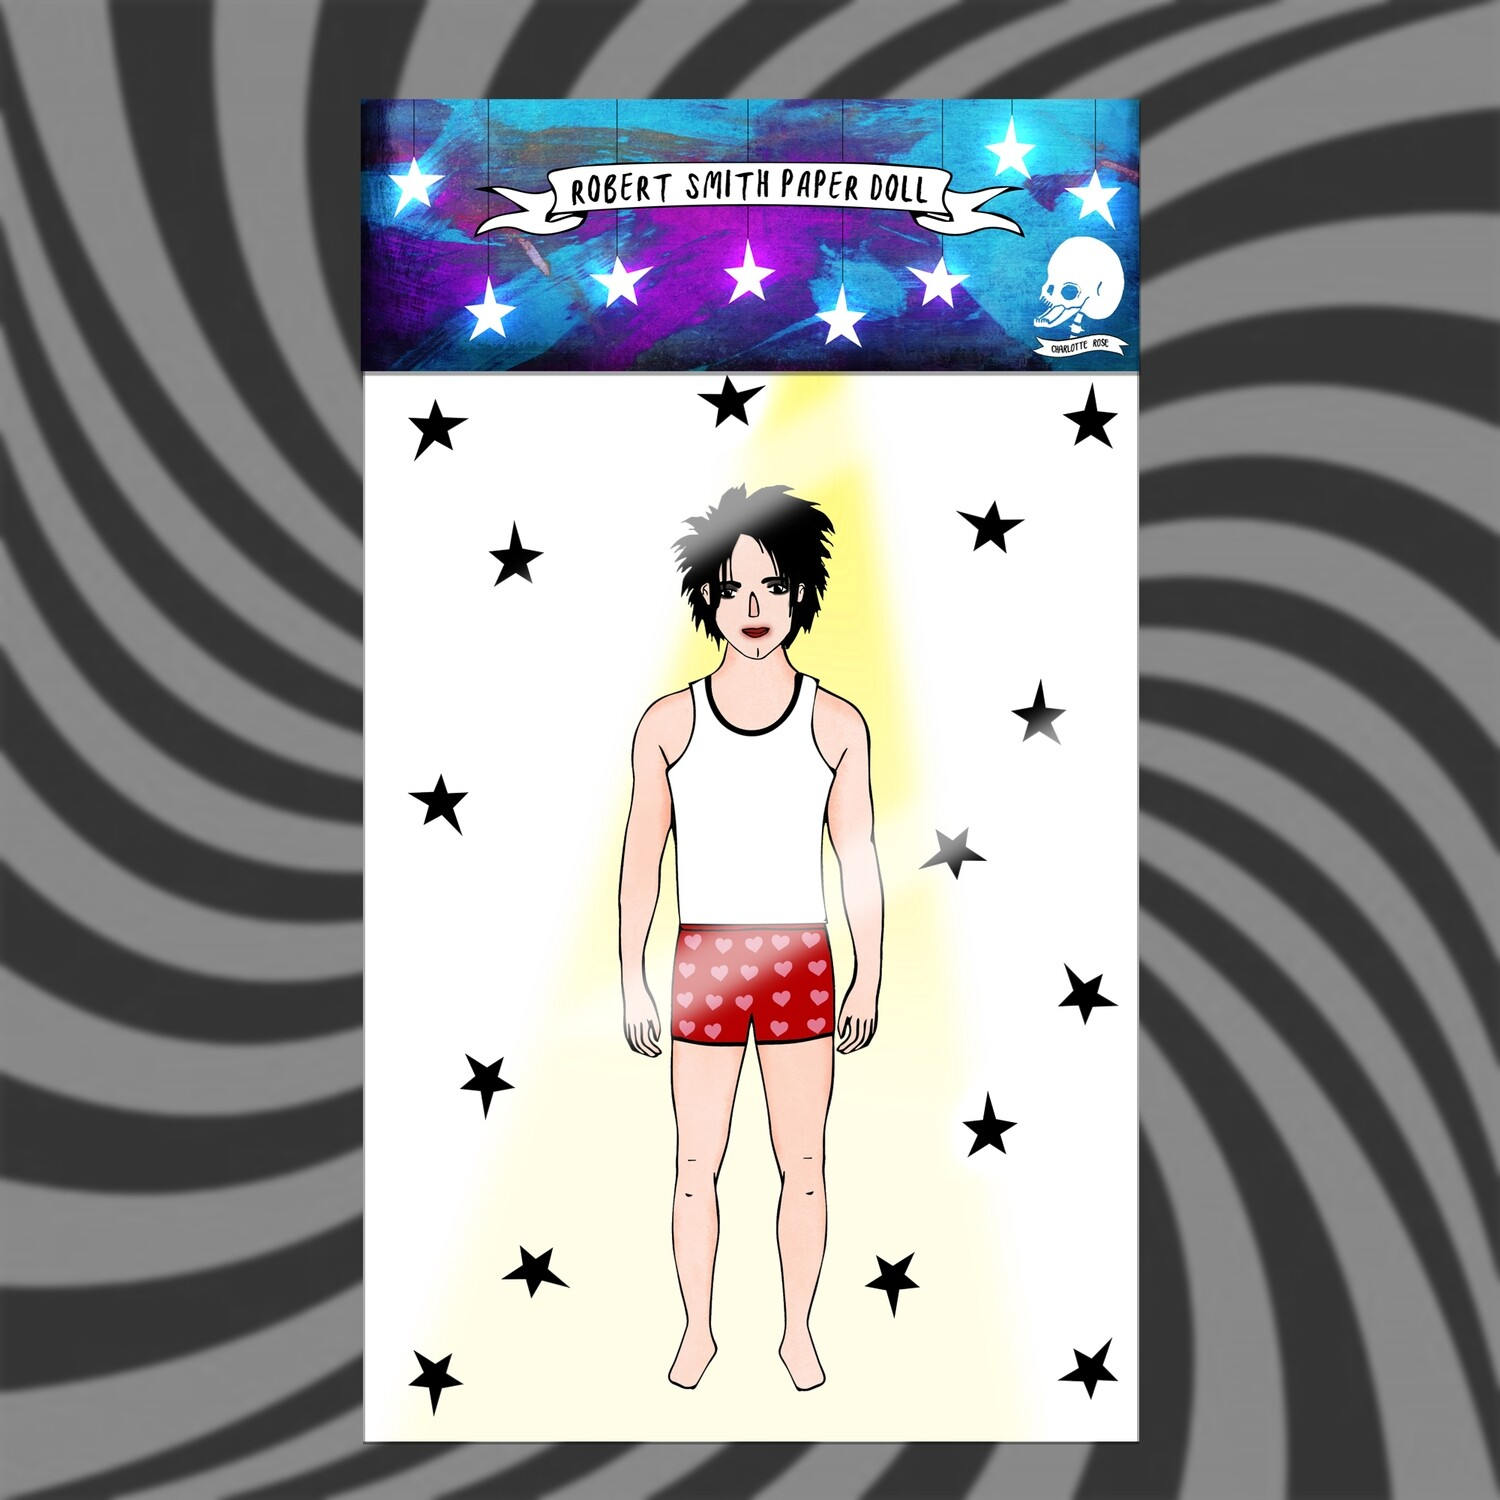 Robert Smith - The Cure Paper Doll